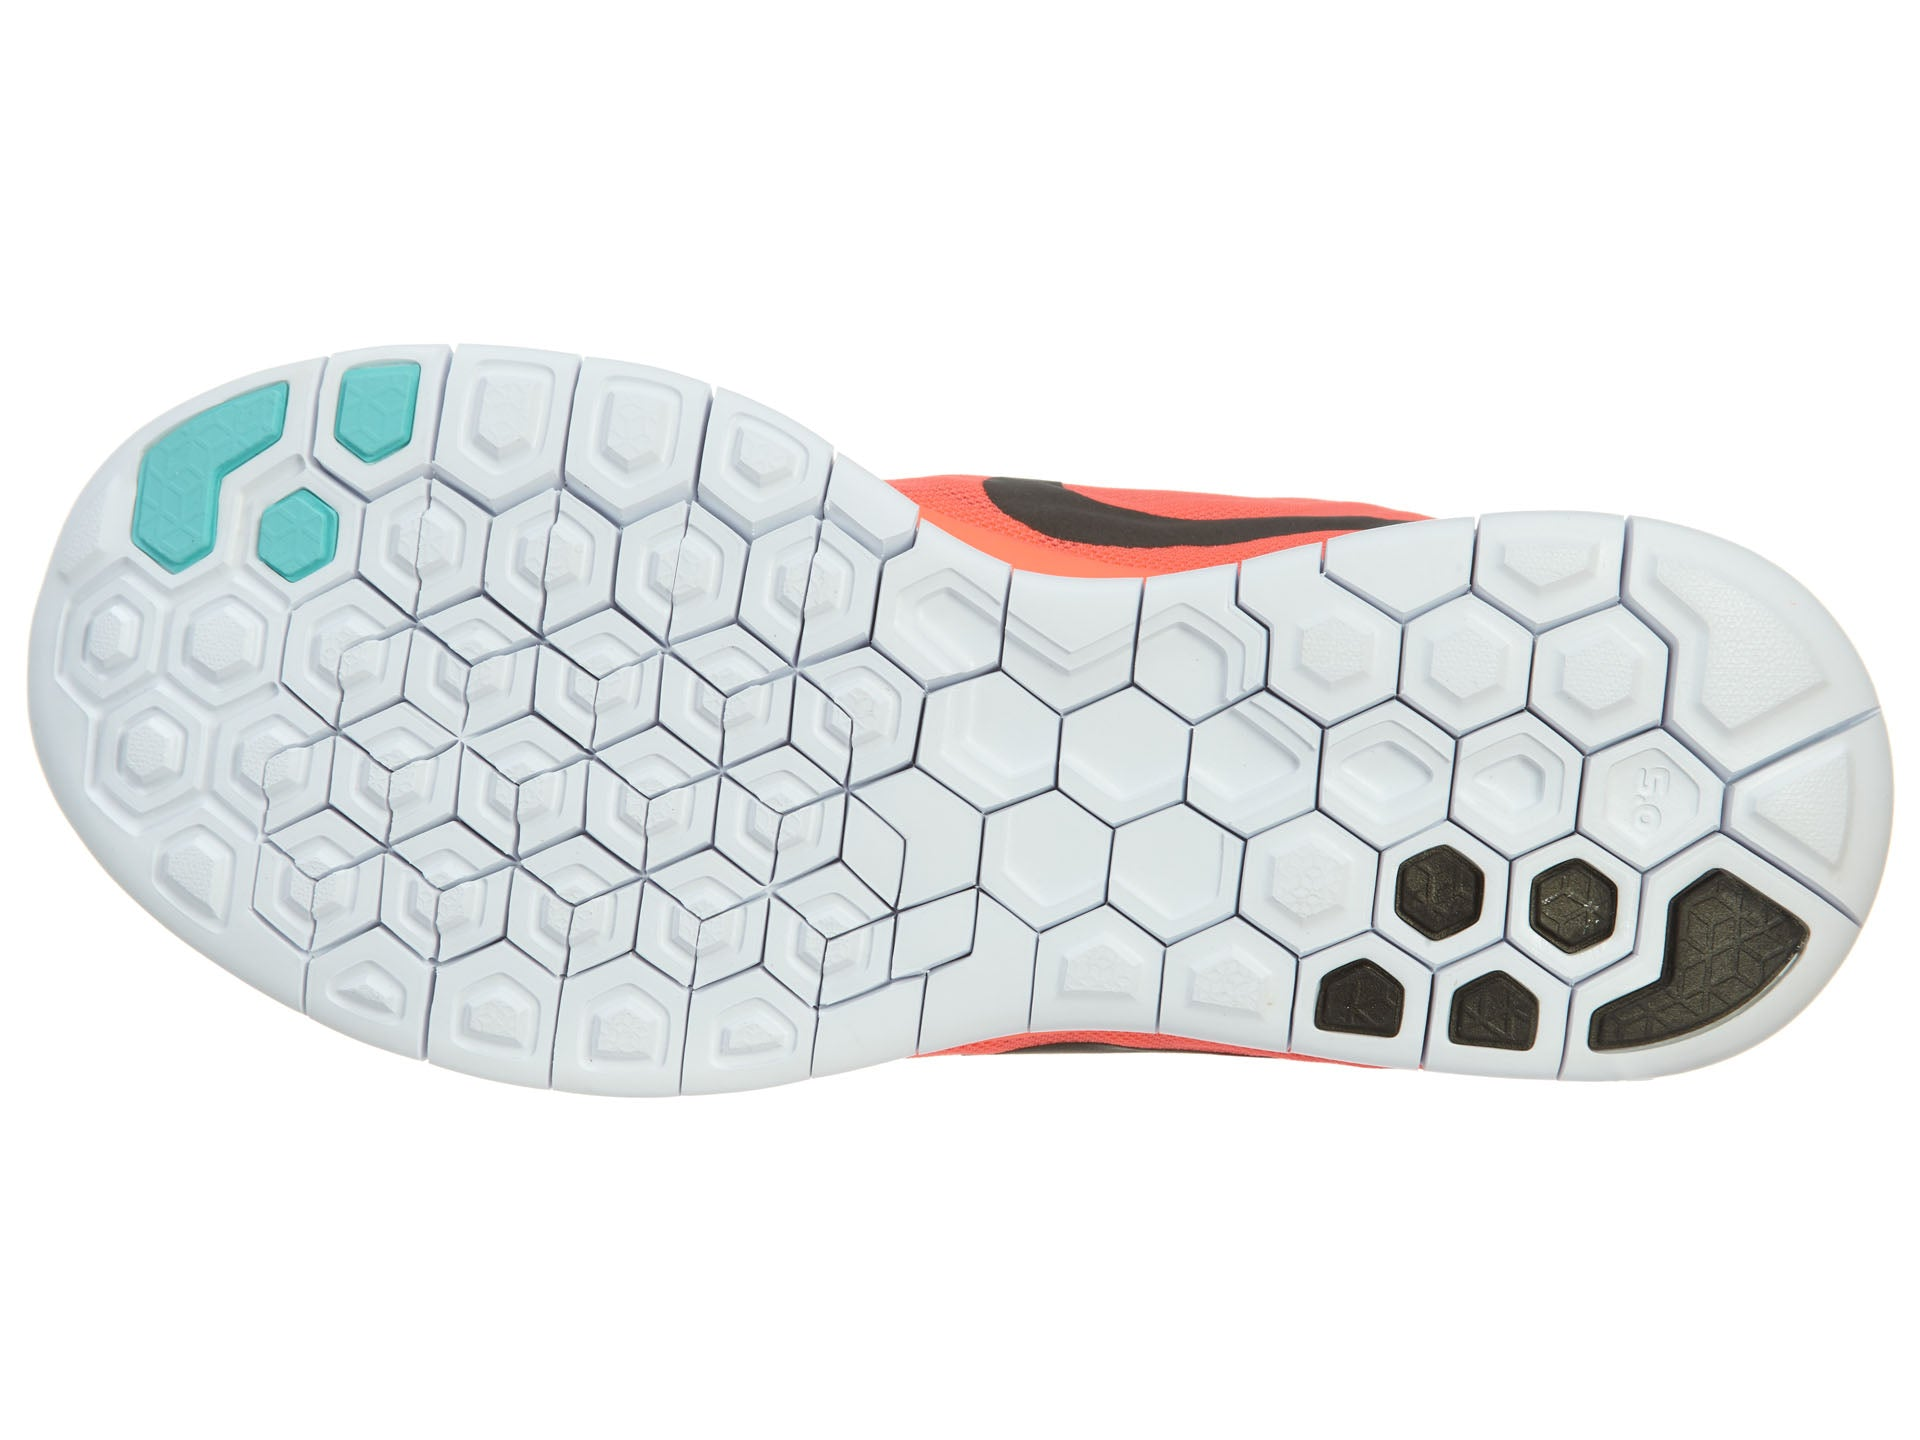 7a9224e5d2282 Nike Free 5.0 Womens Style   724383. NIKE   Athletic Shoes   Sneakers